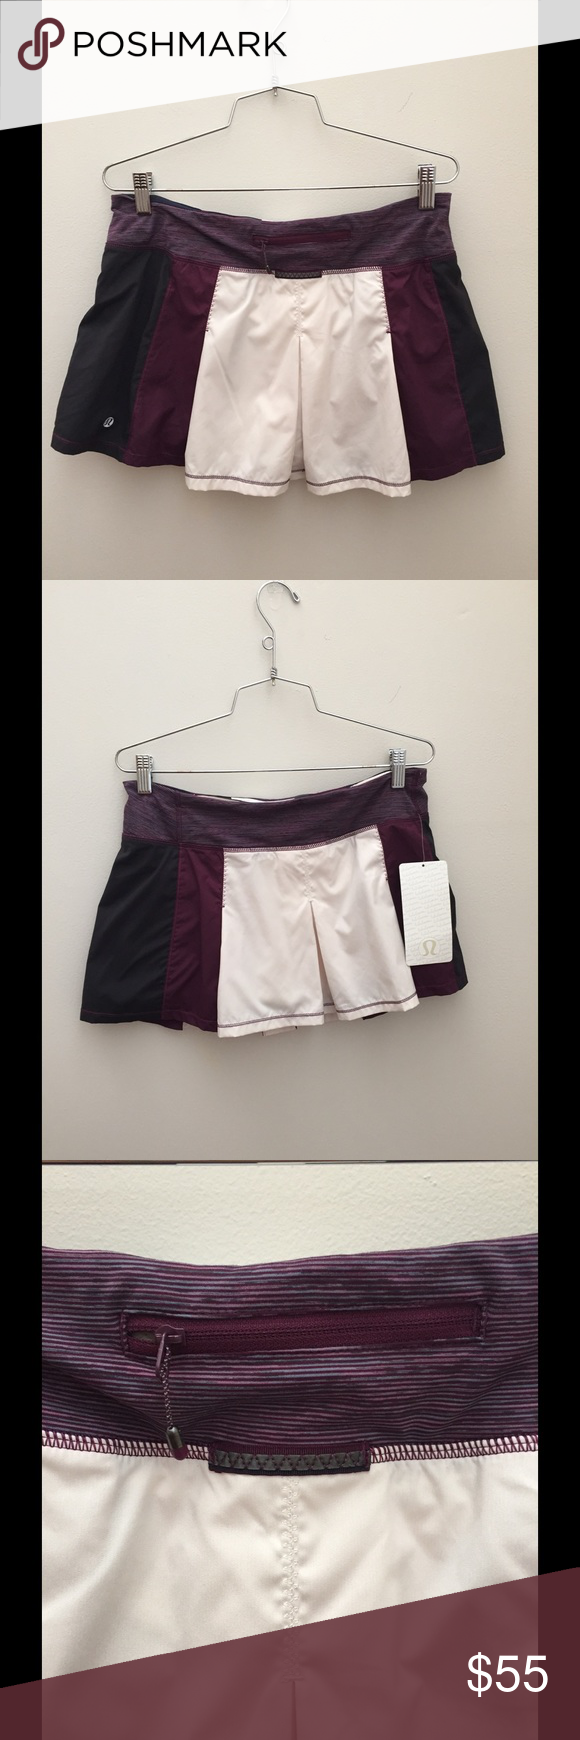 New Lululemon Skirt NWT Plum, Cream, and Black Lululemon Skirt Size 8. The Pleats in the skirt give you an extra range of movement. The thick waistband keeps the skirt in place and lies flat under your top. This item even comes with 2 hidden pockets in the waistband and 1 zipper pocket in the back. Lululemon Skirts